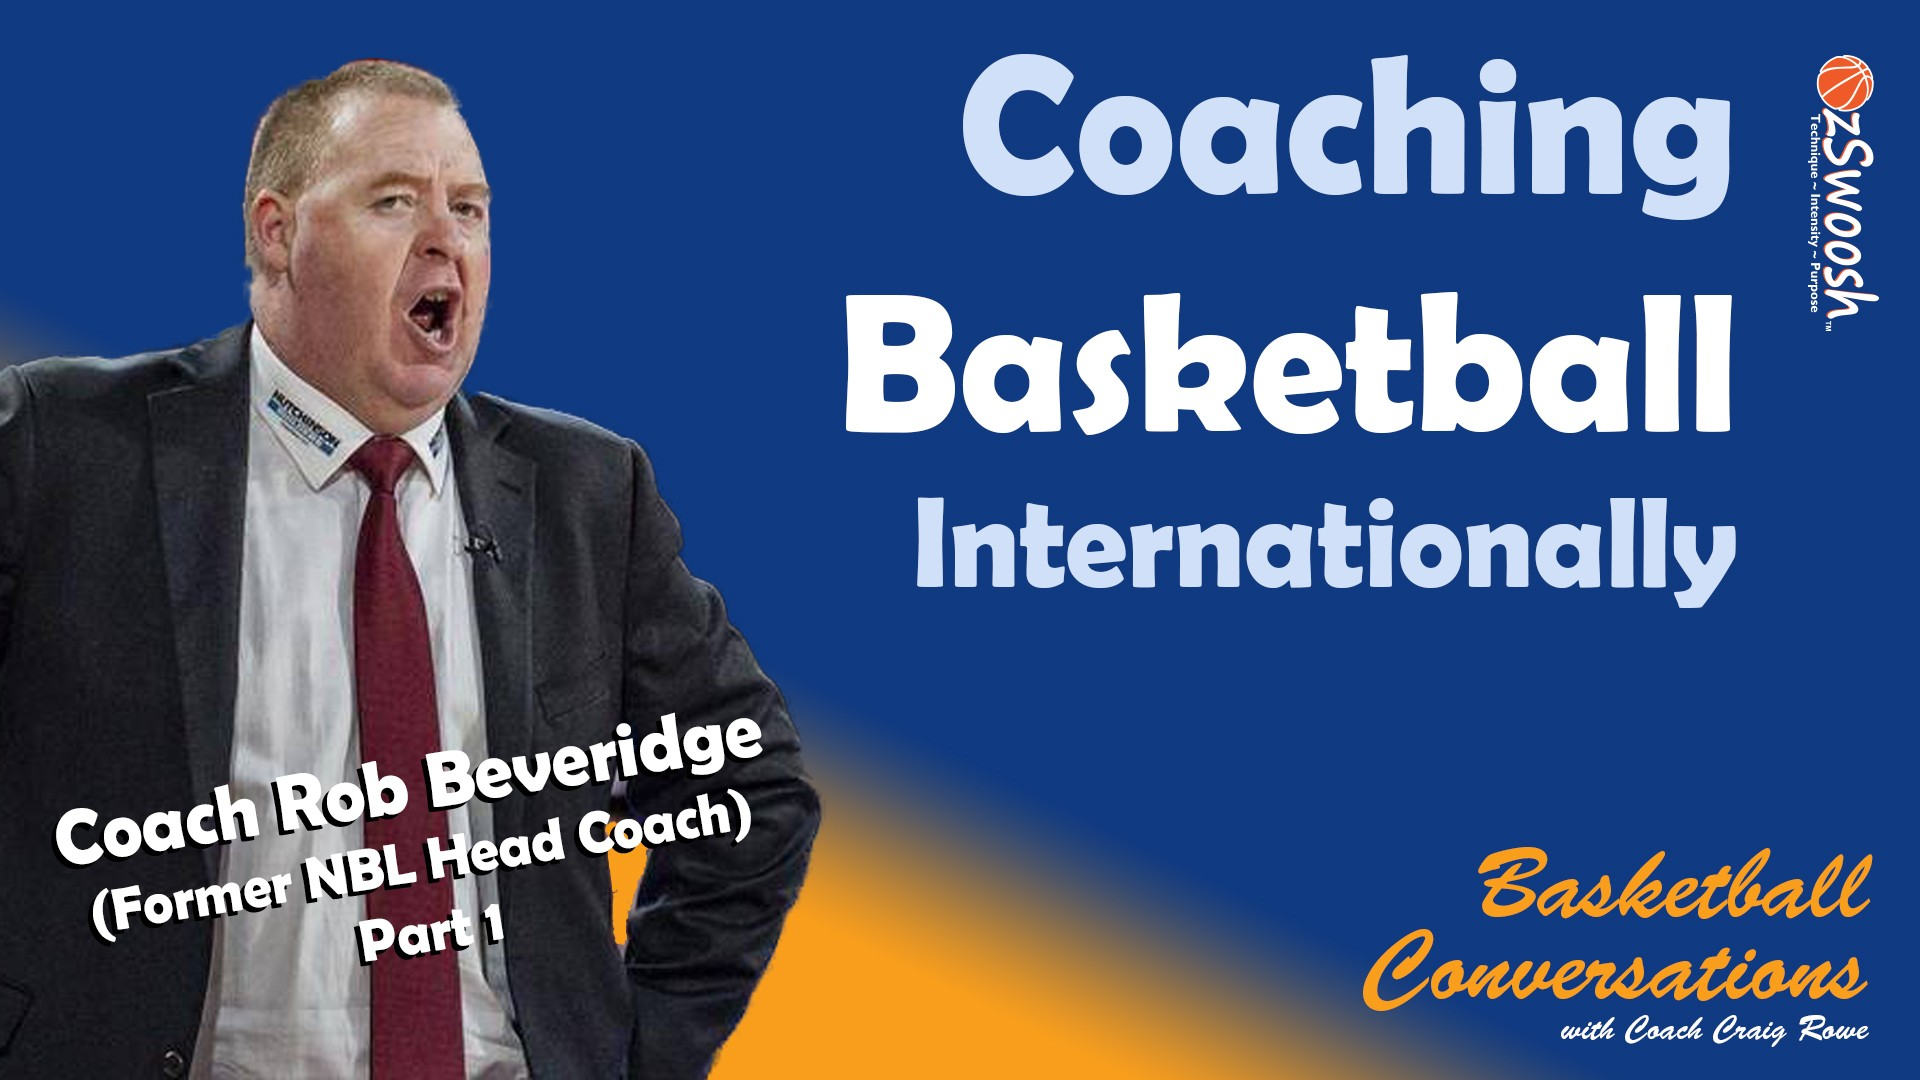 Coaching Basketball Internationally - Rob Beveridge (Part 1)